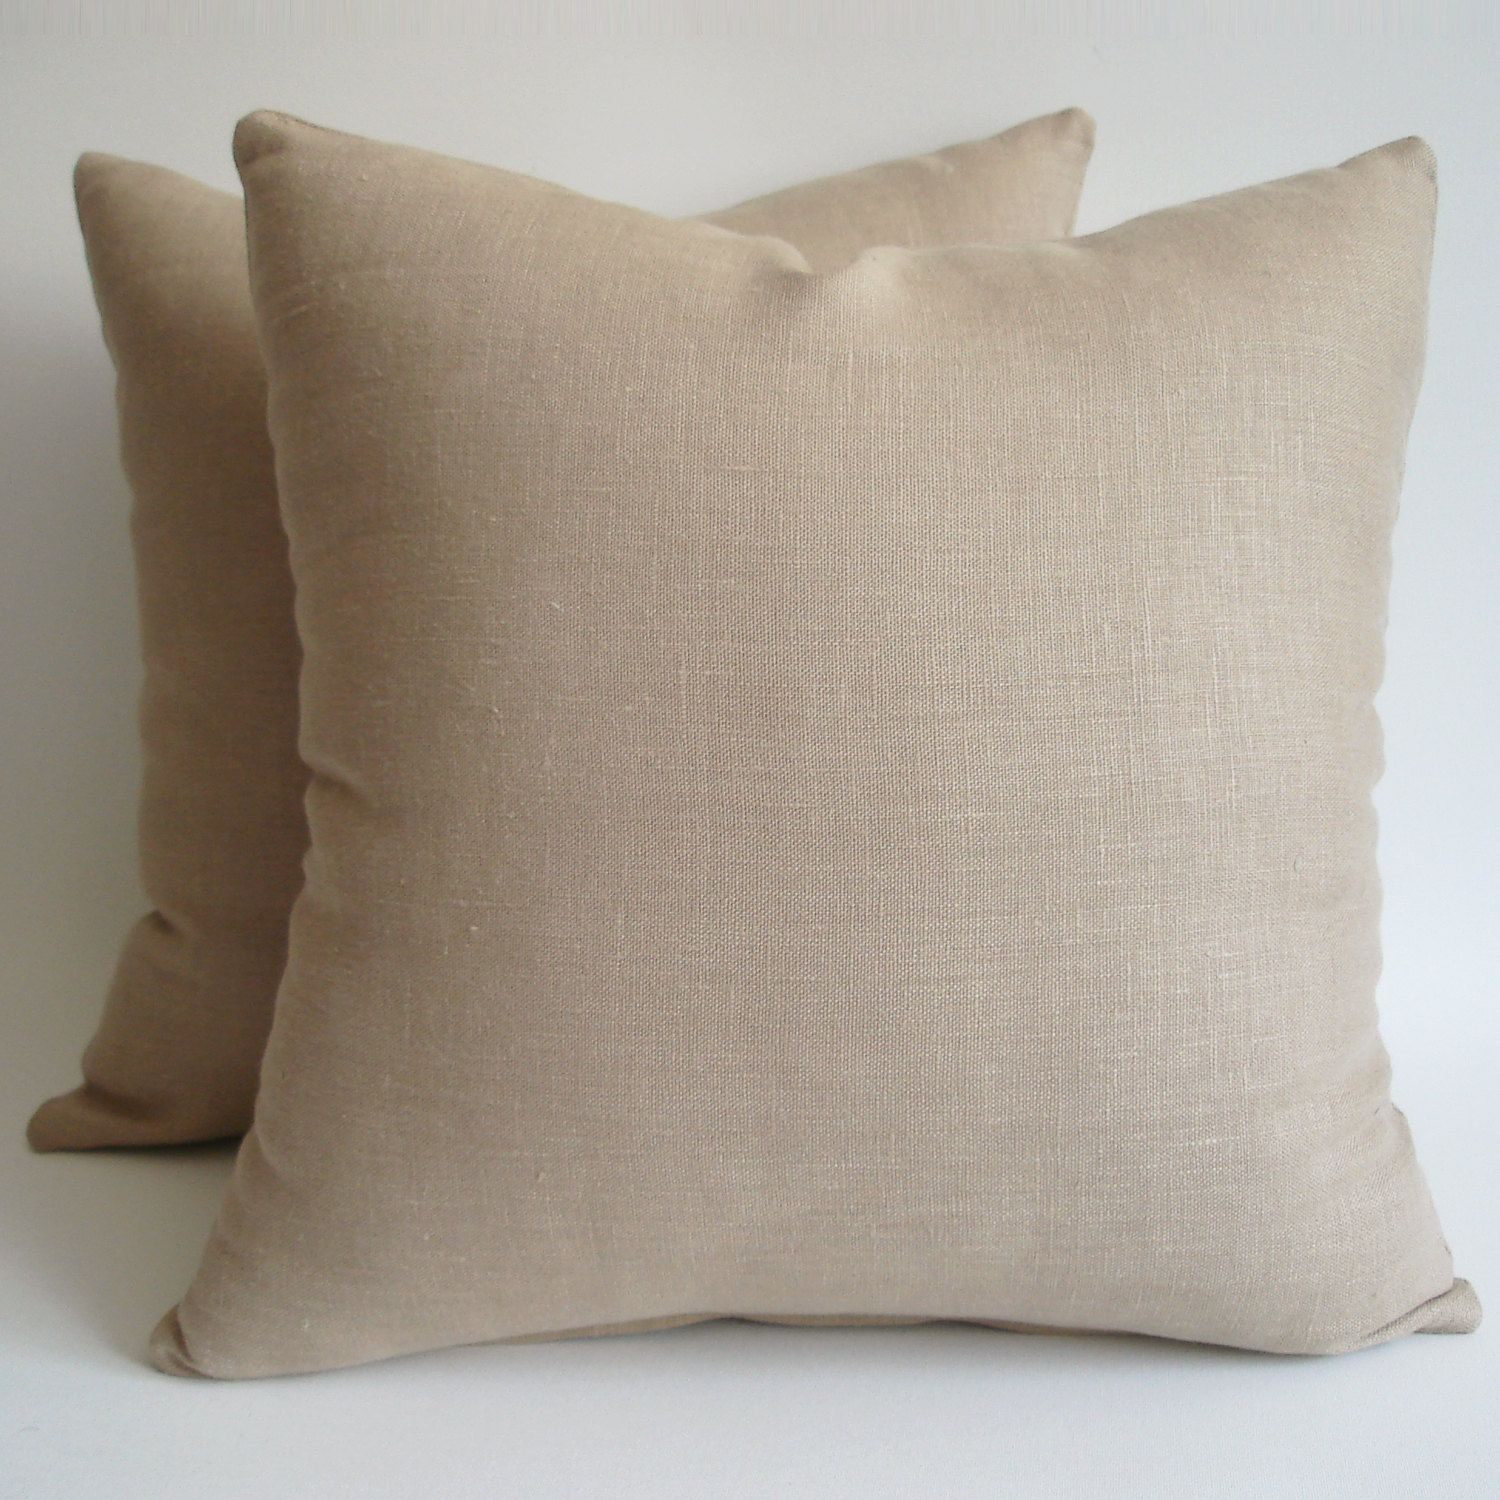 Sukan / SET(2 piece) Off Beige Linen Pillows Decorative ...